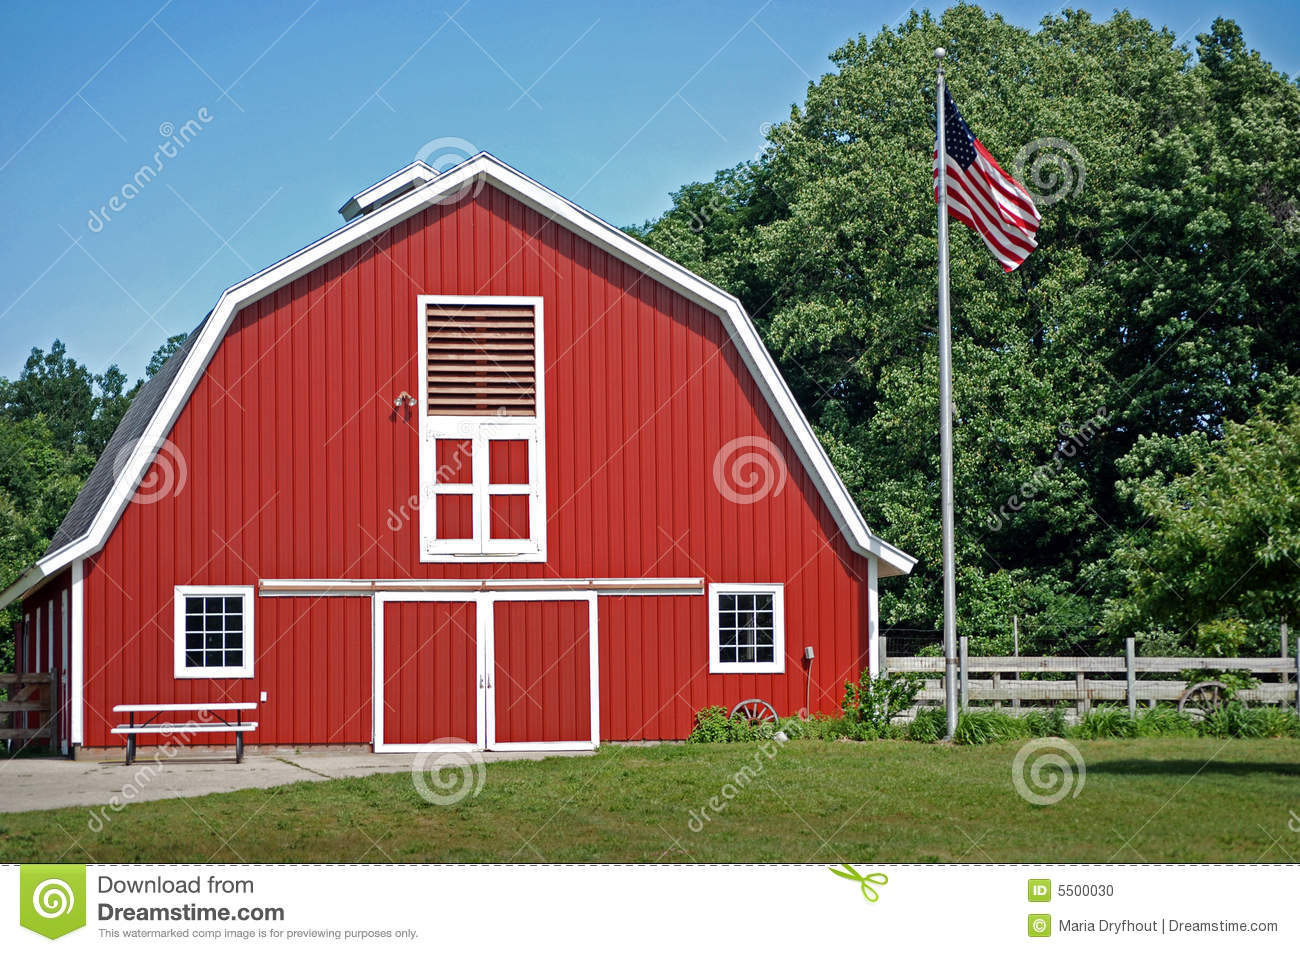 The Red Barn Stock Photo - Image: 5500030